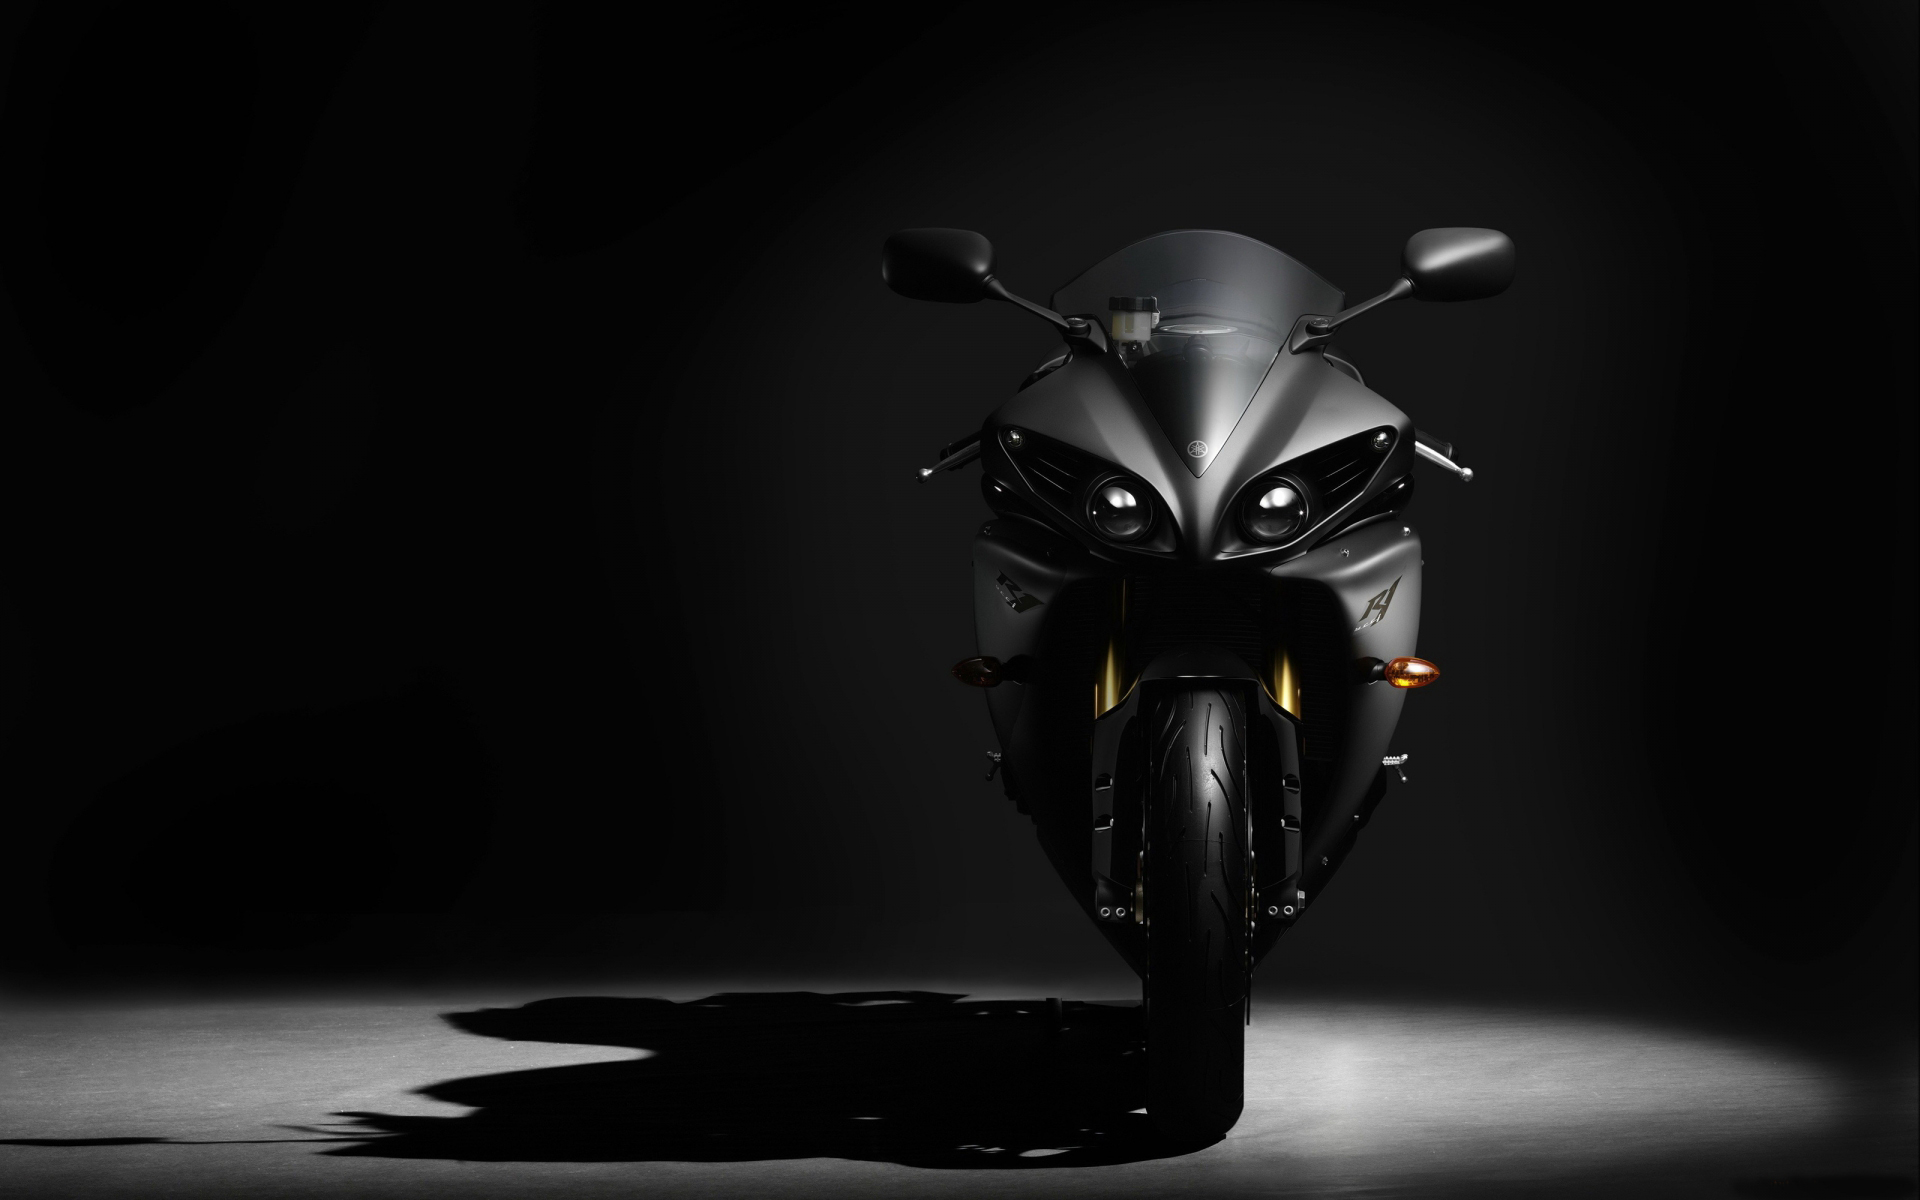 Cool Black Bike Wallpaper